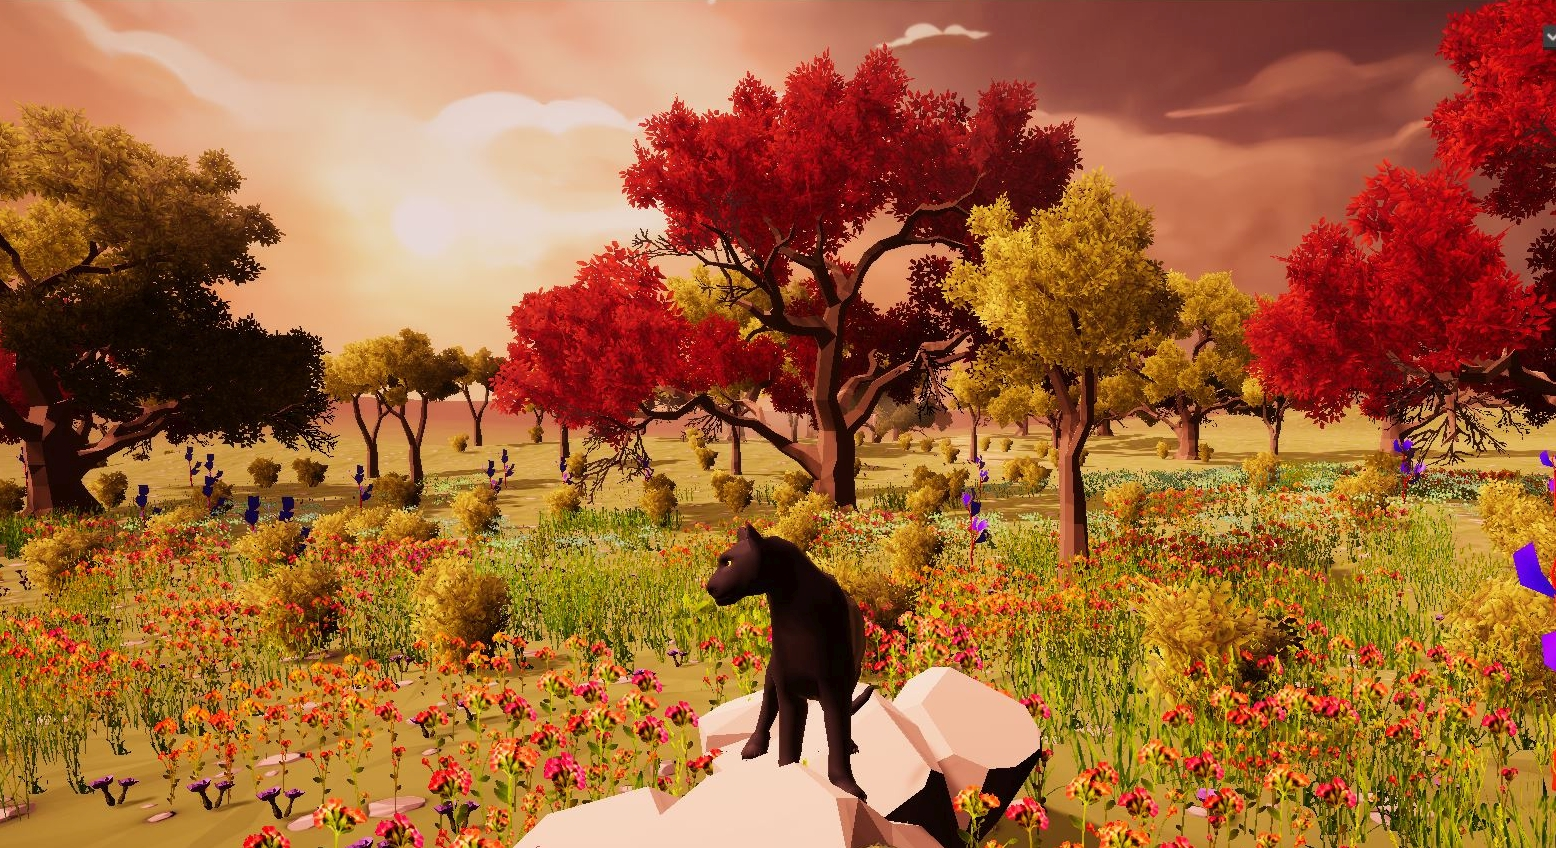 Anilife – A Cross-Platform Multiplayer Animal Survival Game Launches On Kickstarter